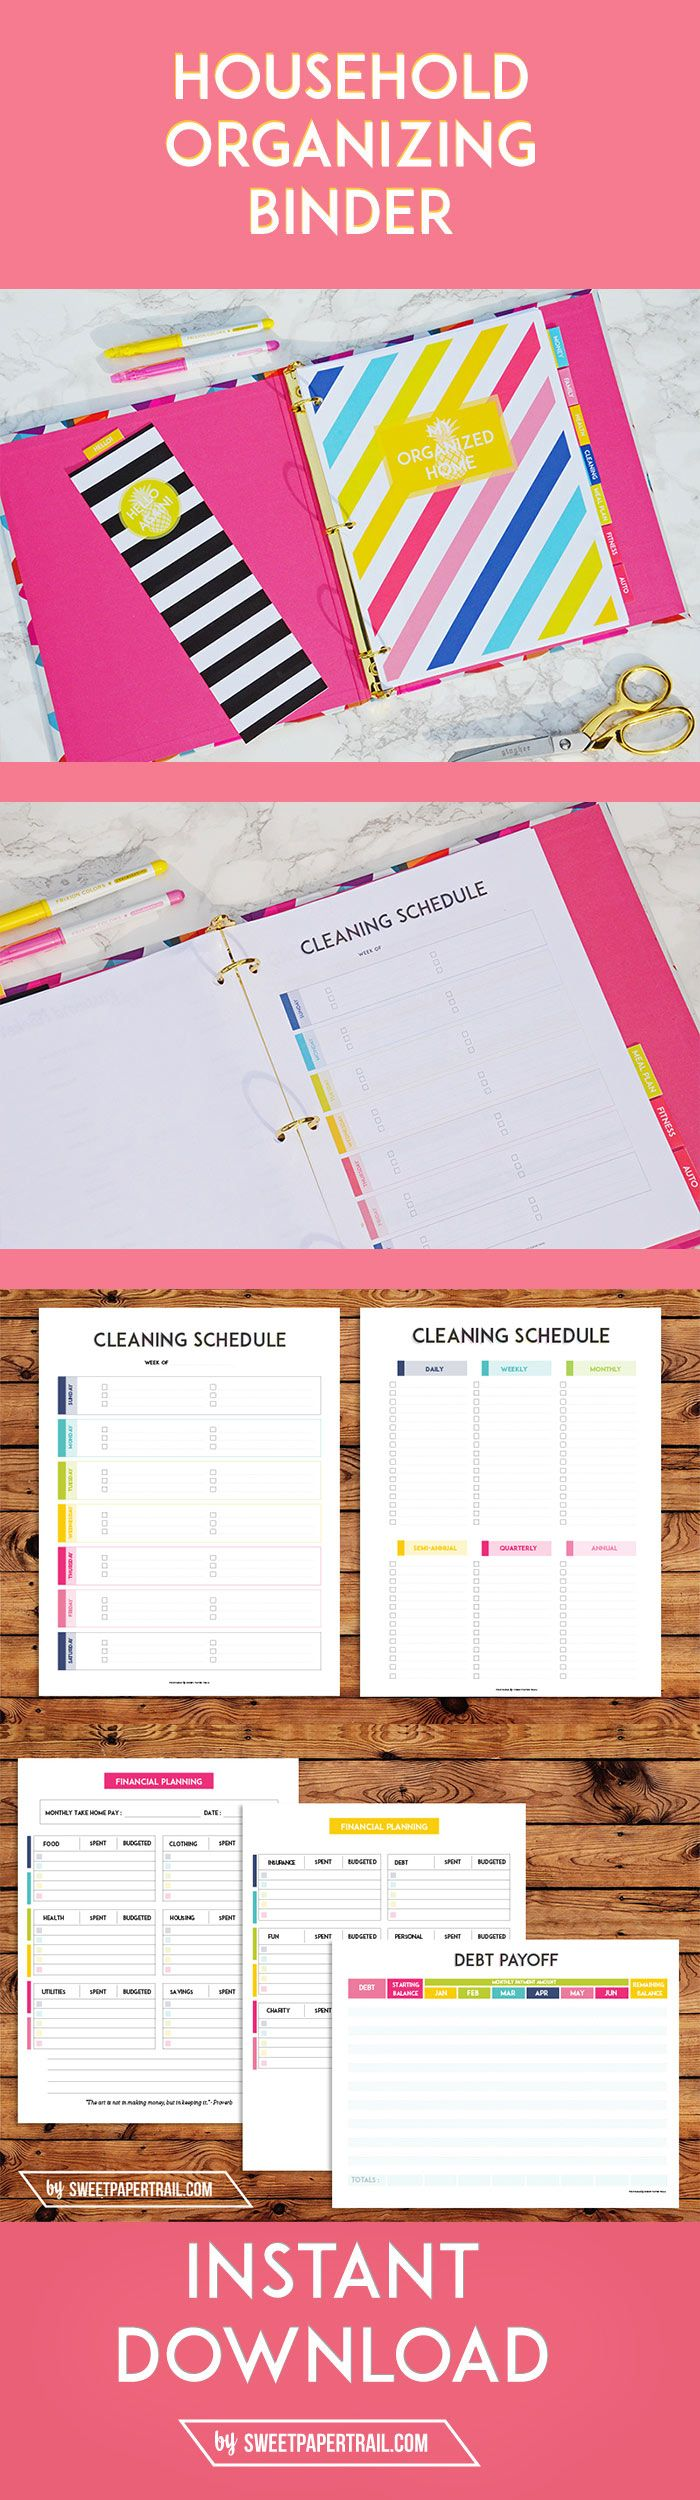 Everything to get your household organized. From Cleaning Lists, to Budget Planning. These Premium, high-quality printables are available as an Instant download. Here is what is included: Total of 29 printables – 40 pages NO FLUFF OR UNNECESSARY PAGES! ONLY HIGH QUALITY VIBRANT & COLORFUL PDF'S